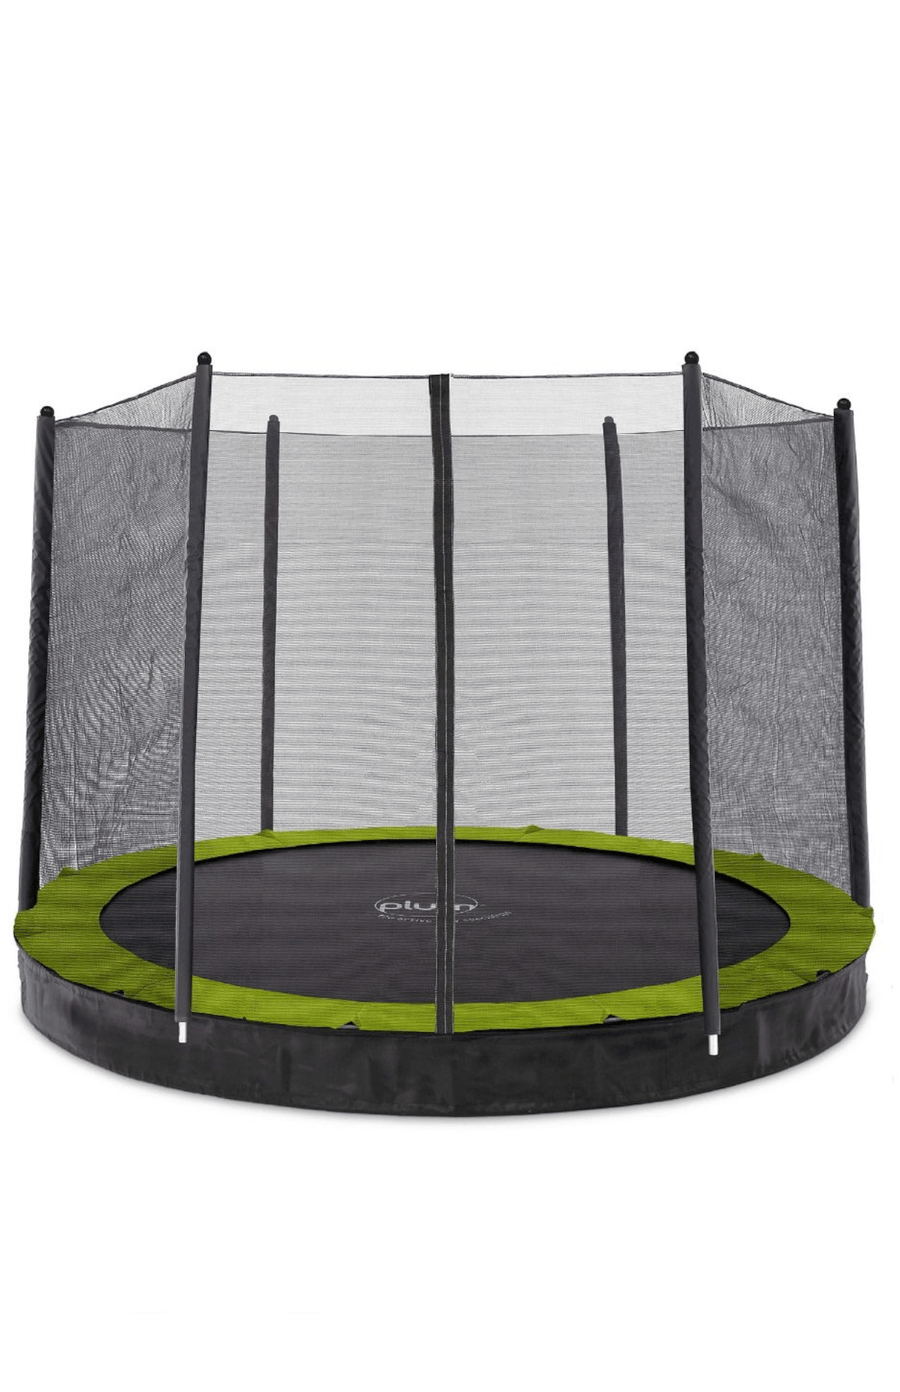 Plum® 8ft Circular In Ground Trampoline with Enclosure